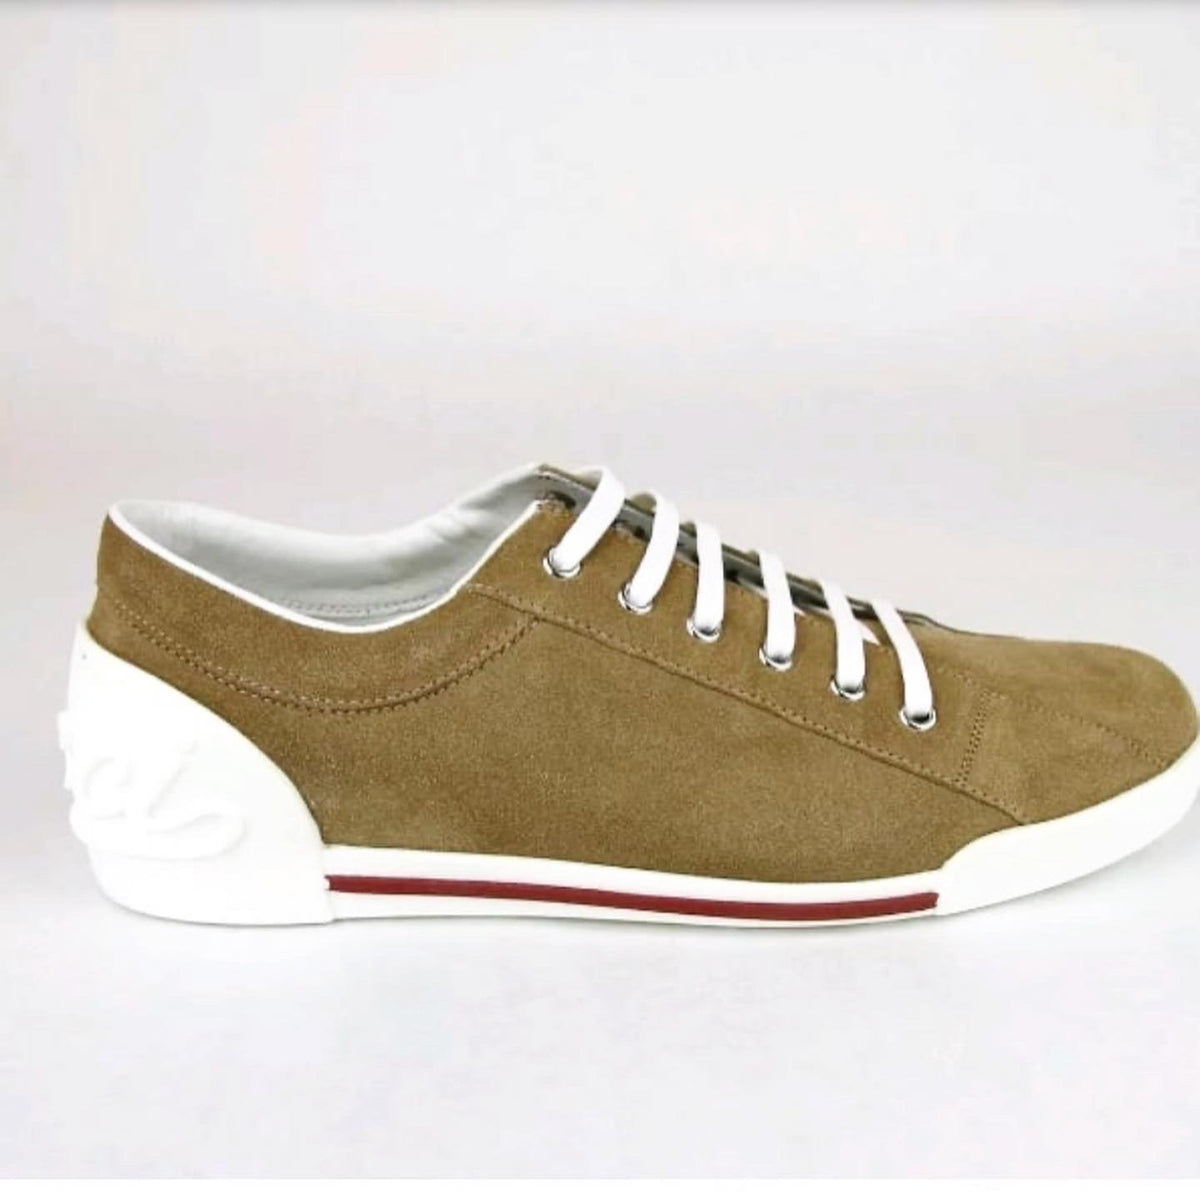 Gucci Women's Suede Sneakers